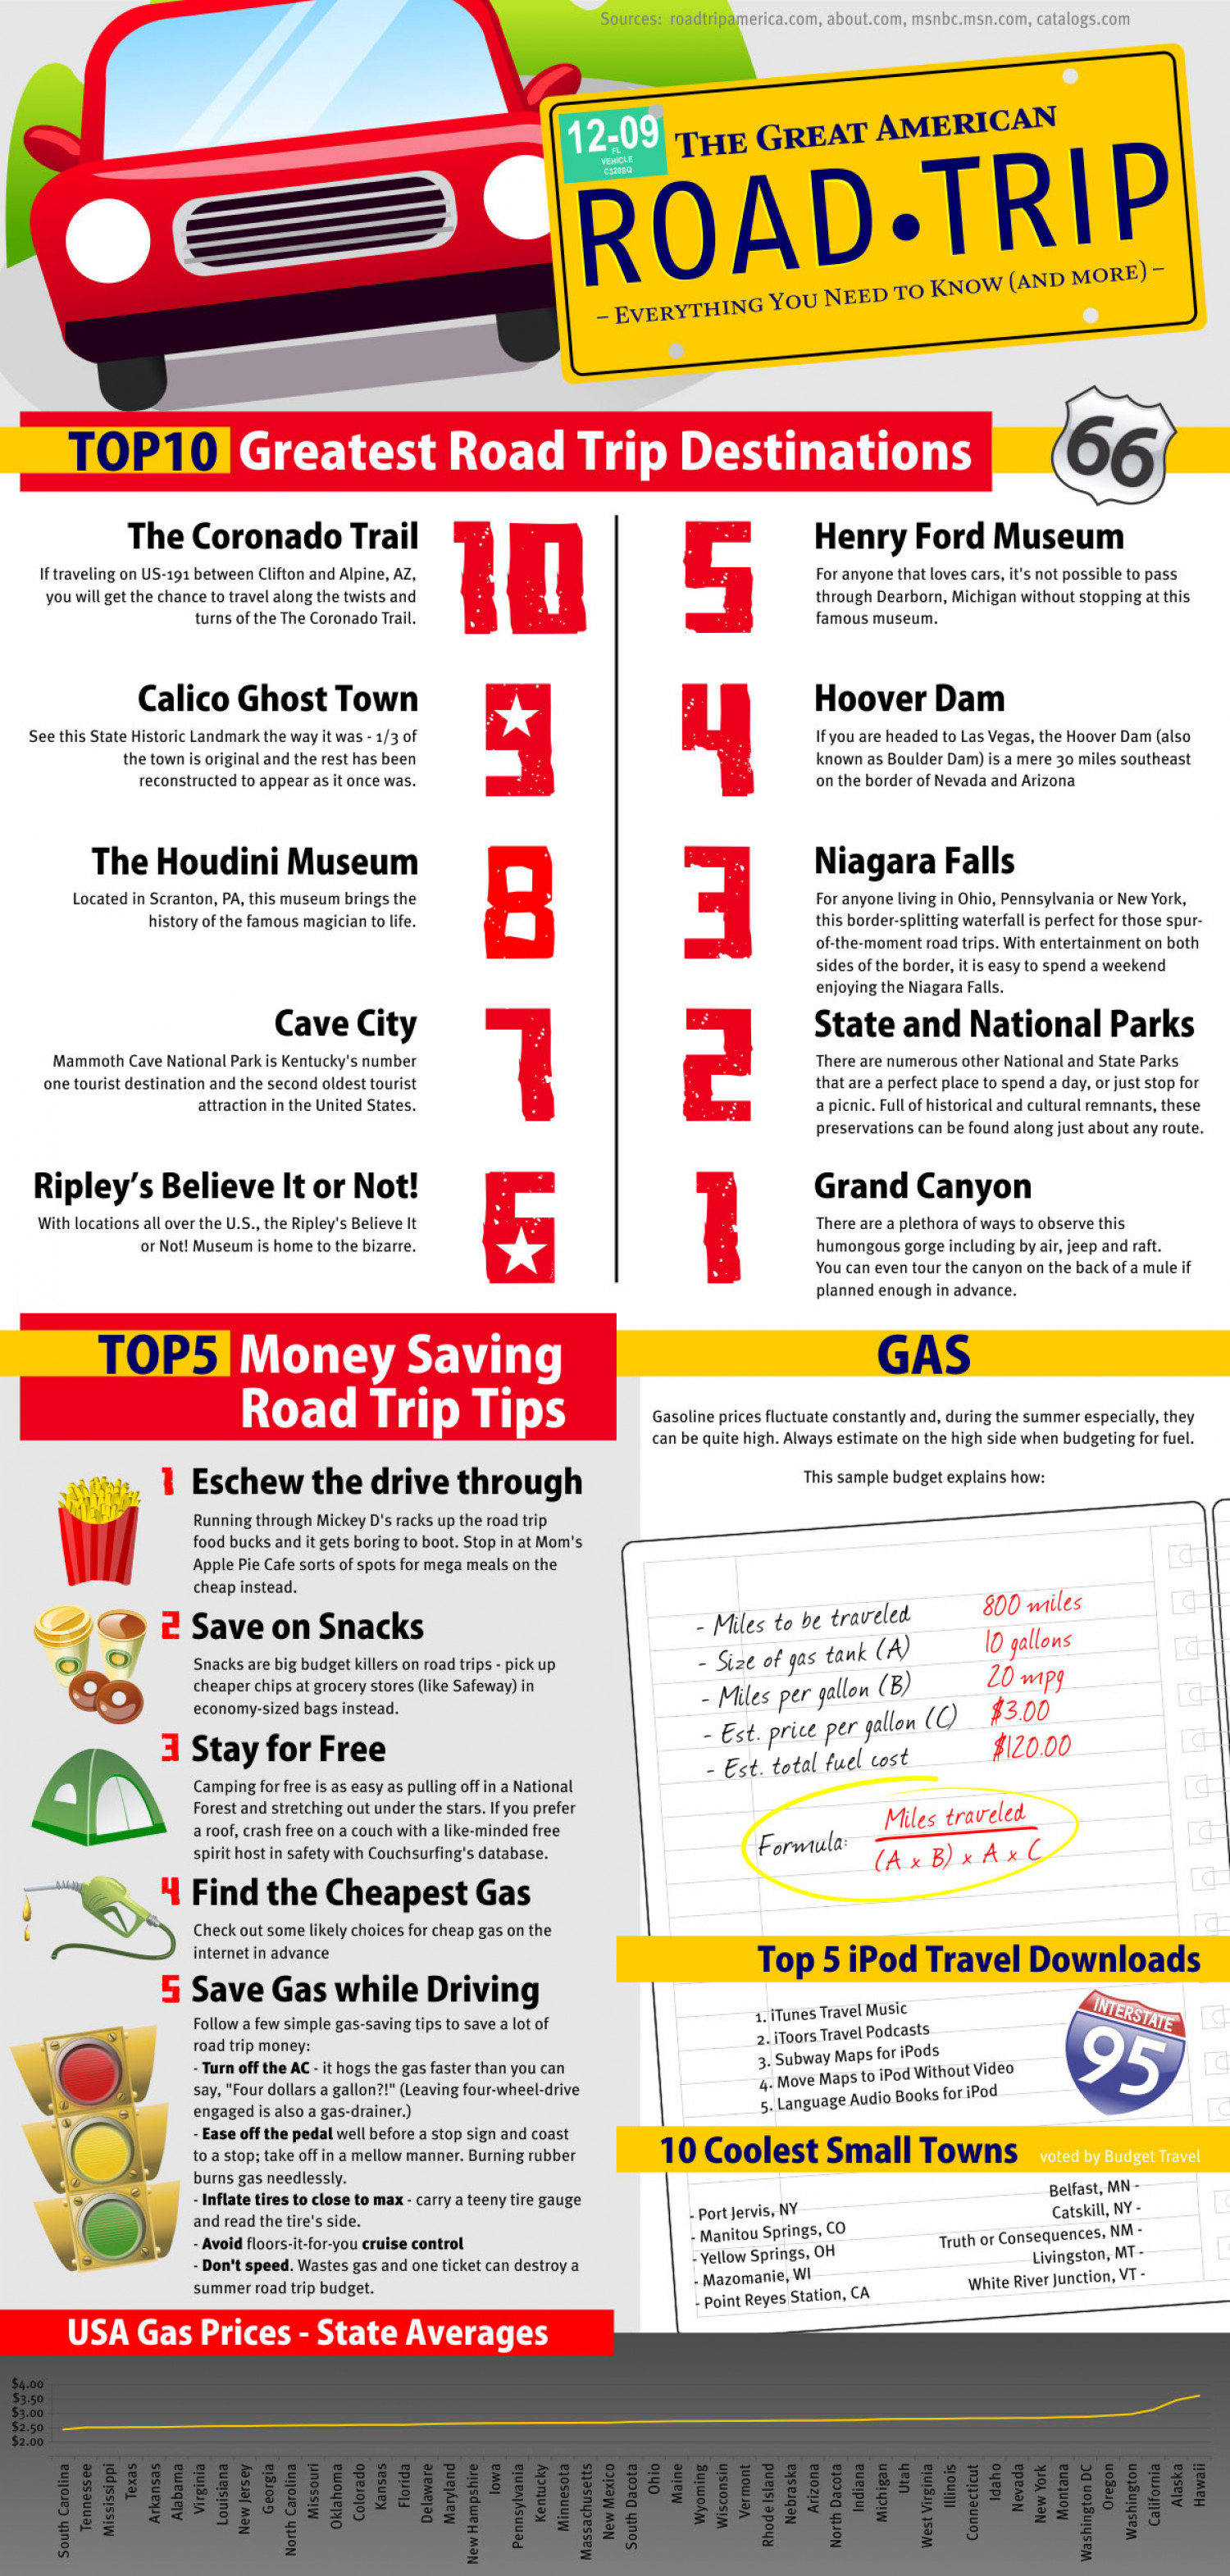 The Great American Road Trip Infographic